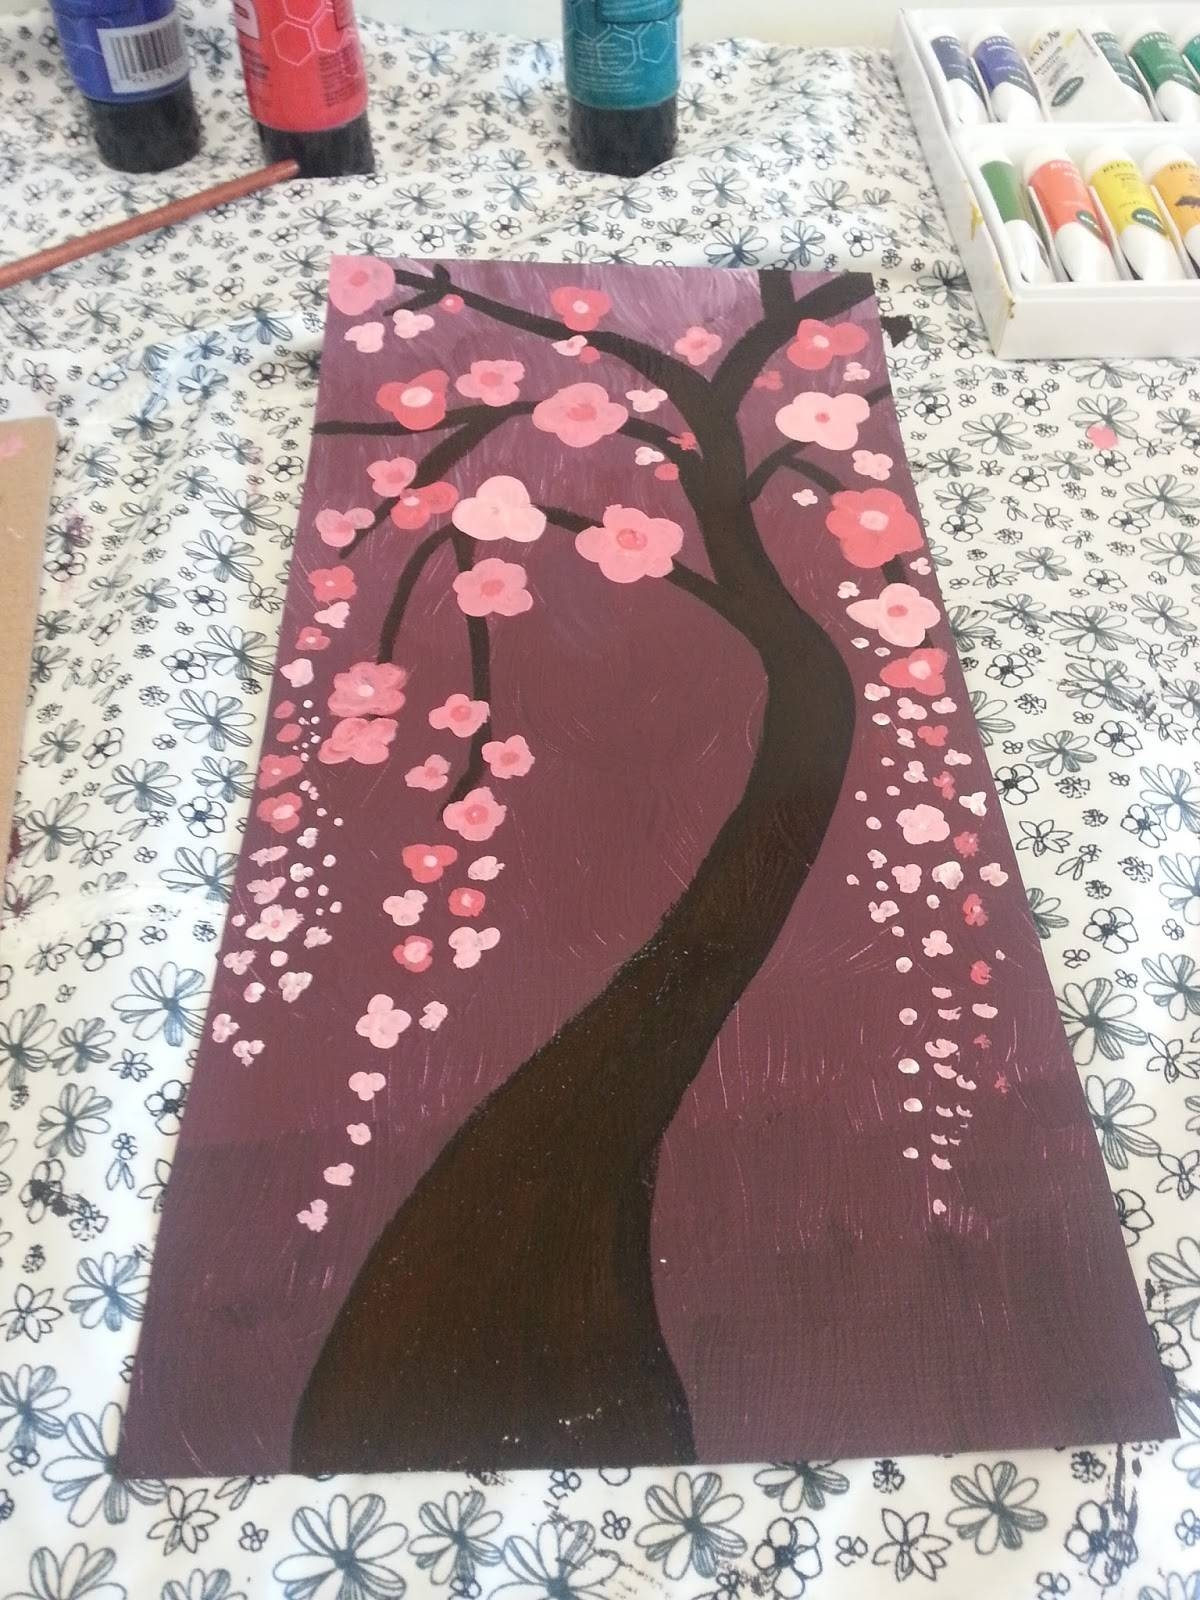 Noodle Reviews: Diy Wall Art – Cherry Blossoms With Acrylic Paint For Recent Red Cherry Blossom Wall Art (View 25 of 30)